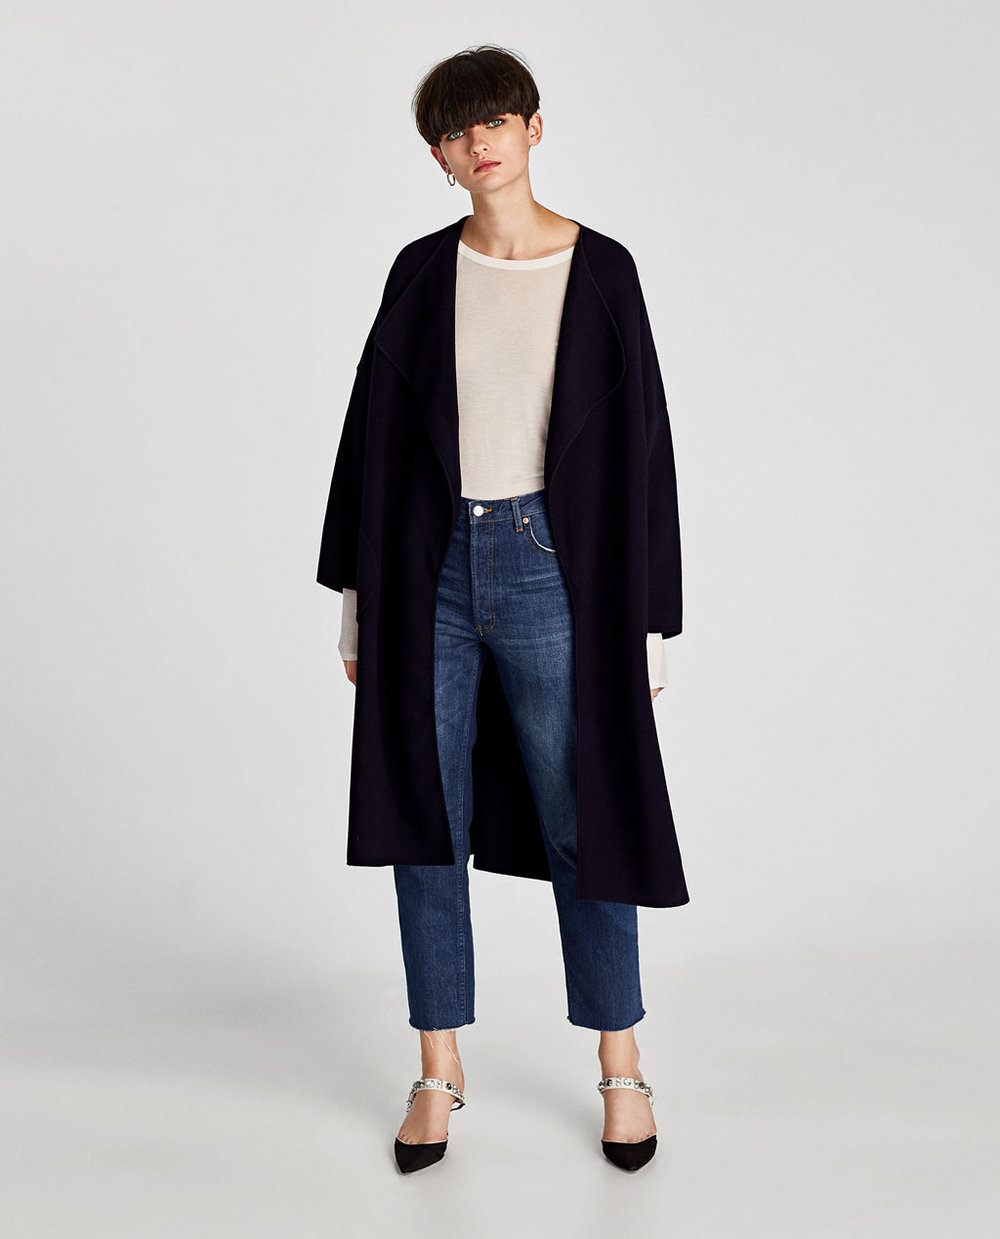 Zara Oversized Coat $119